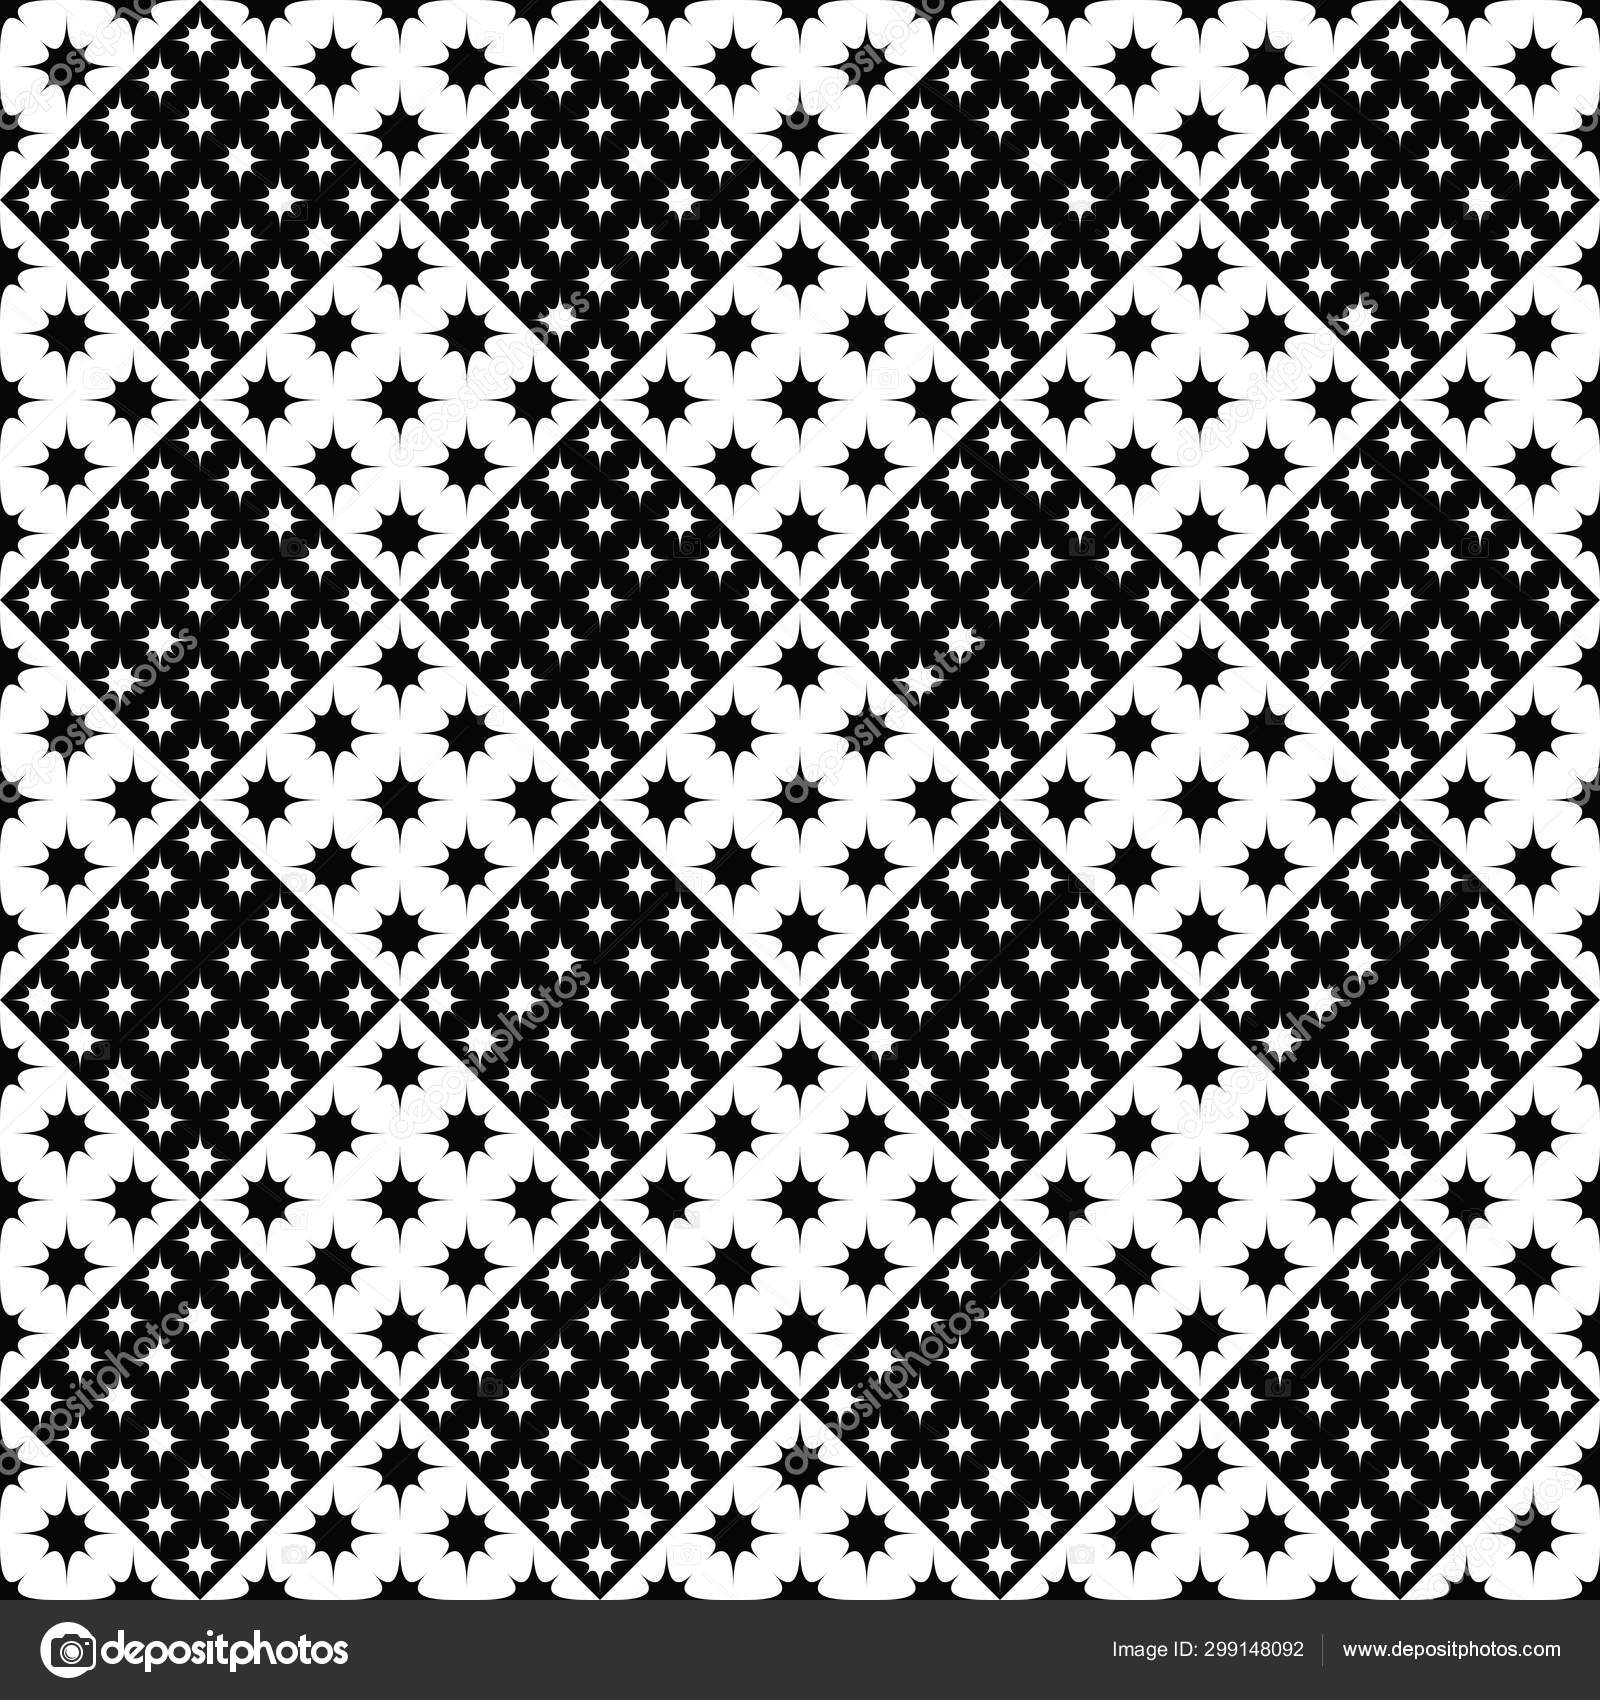 Seamless Geometrical Black And White Star Pattern Background